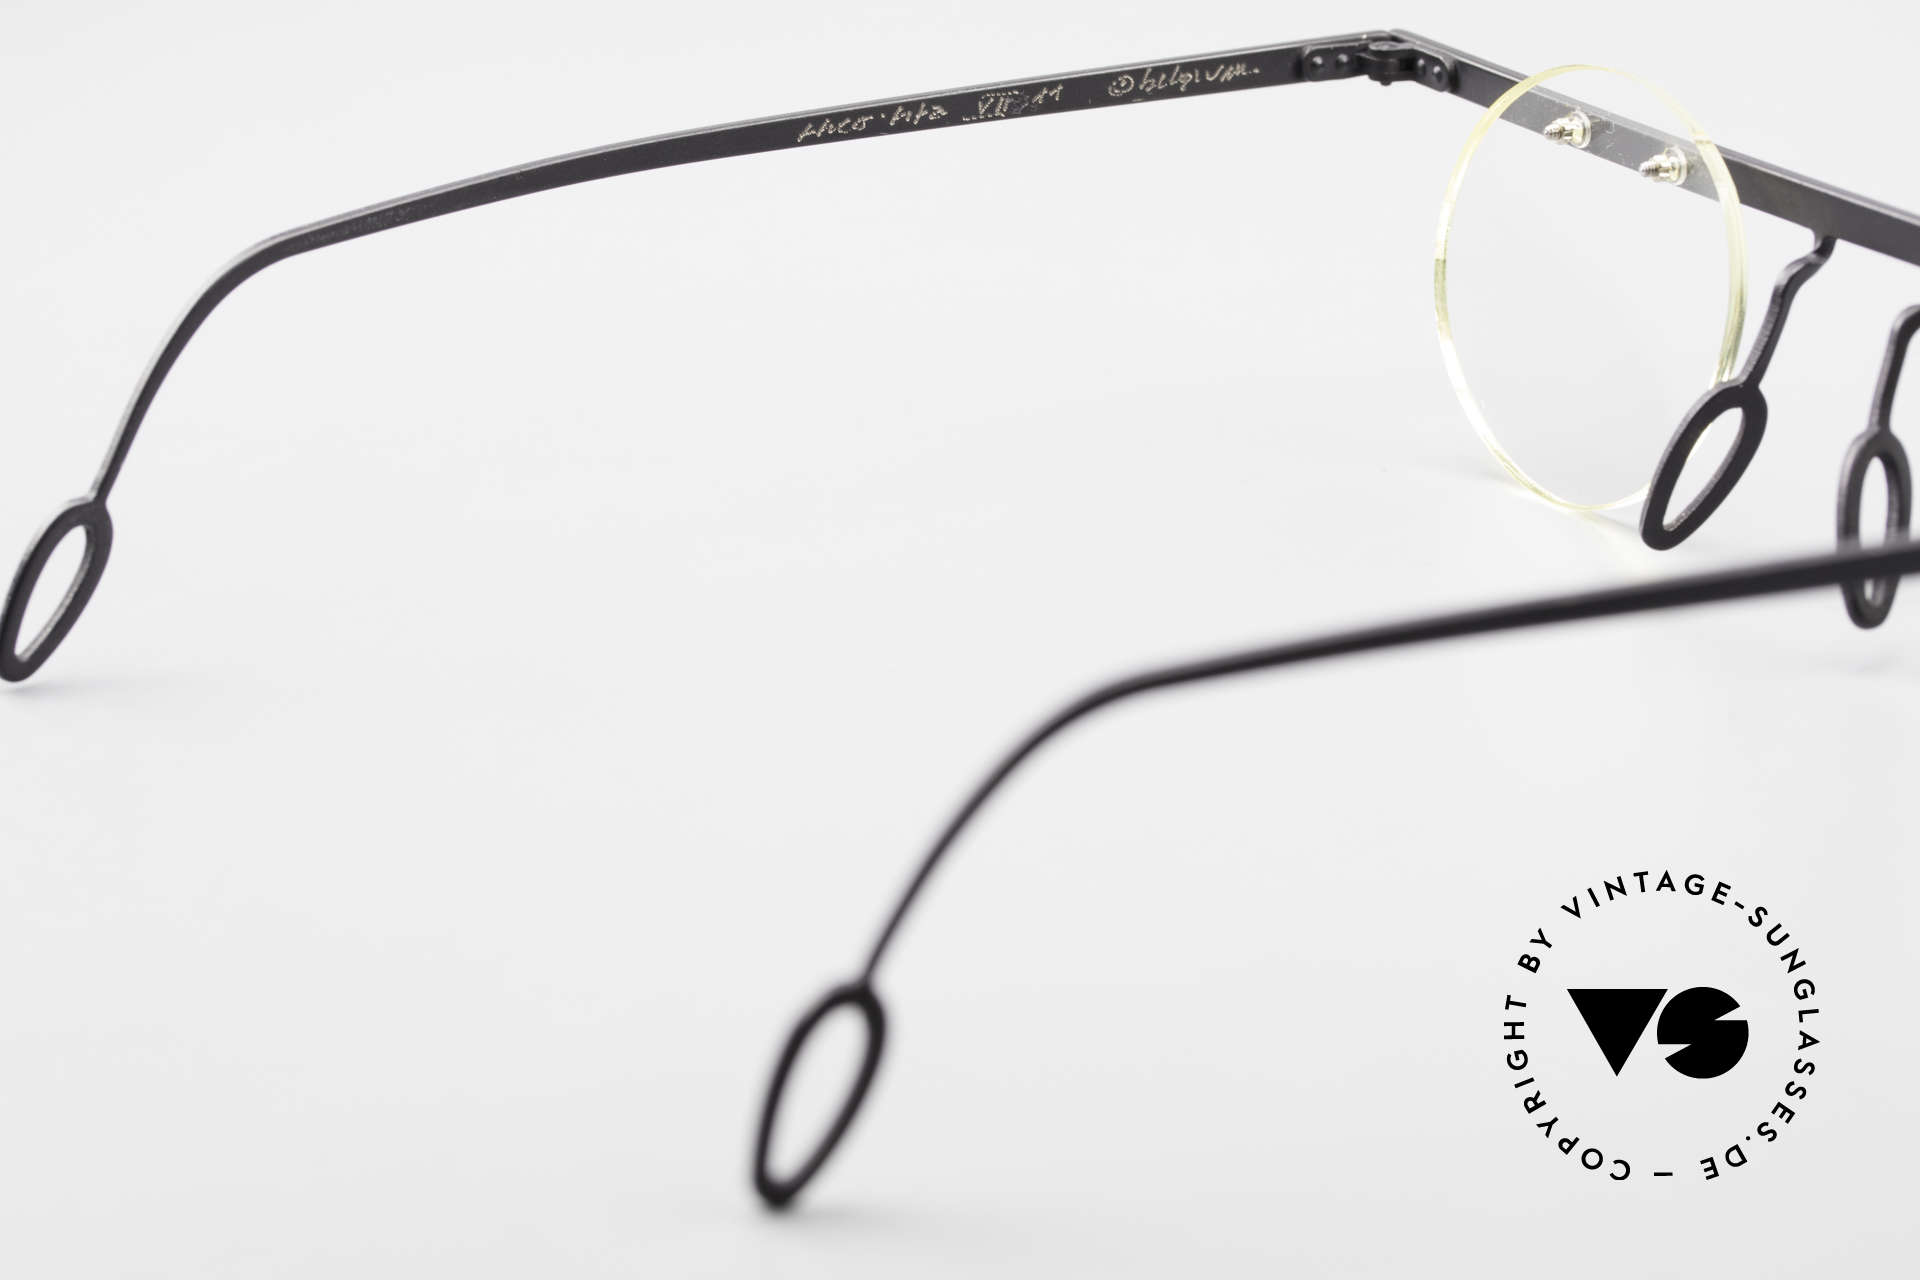 Theo Belgium Tita VII 11 Vintage Titanium Eyeglasses, DEMO LENSES can be replaced with optical / sun lenses, Made for Men and Women